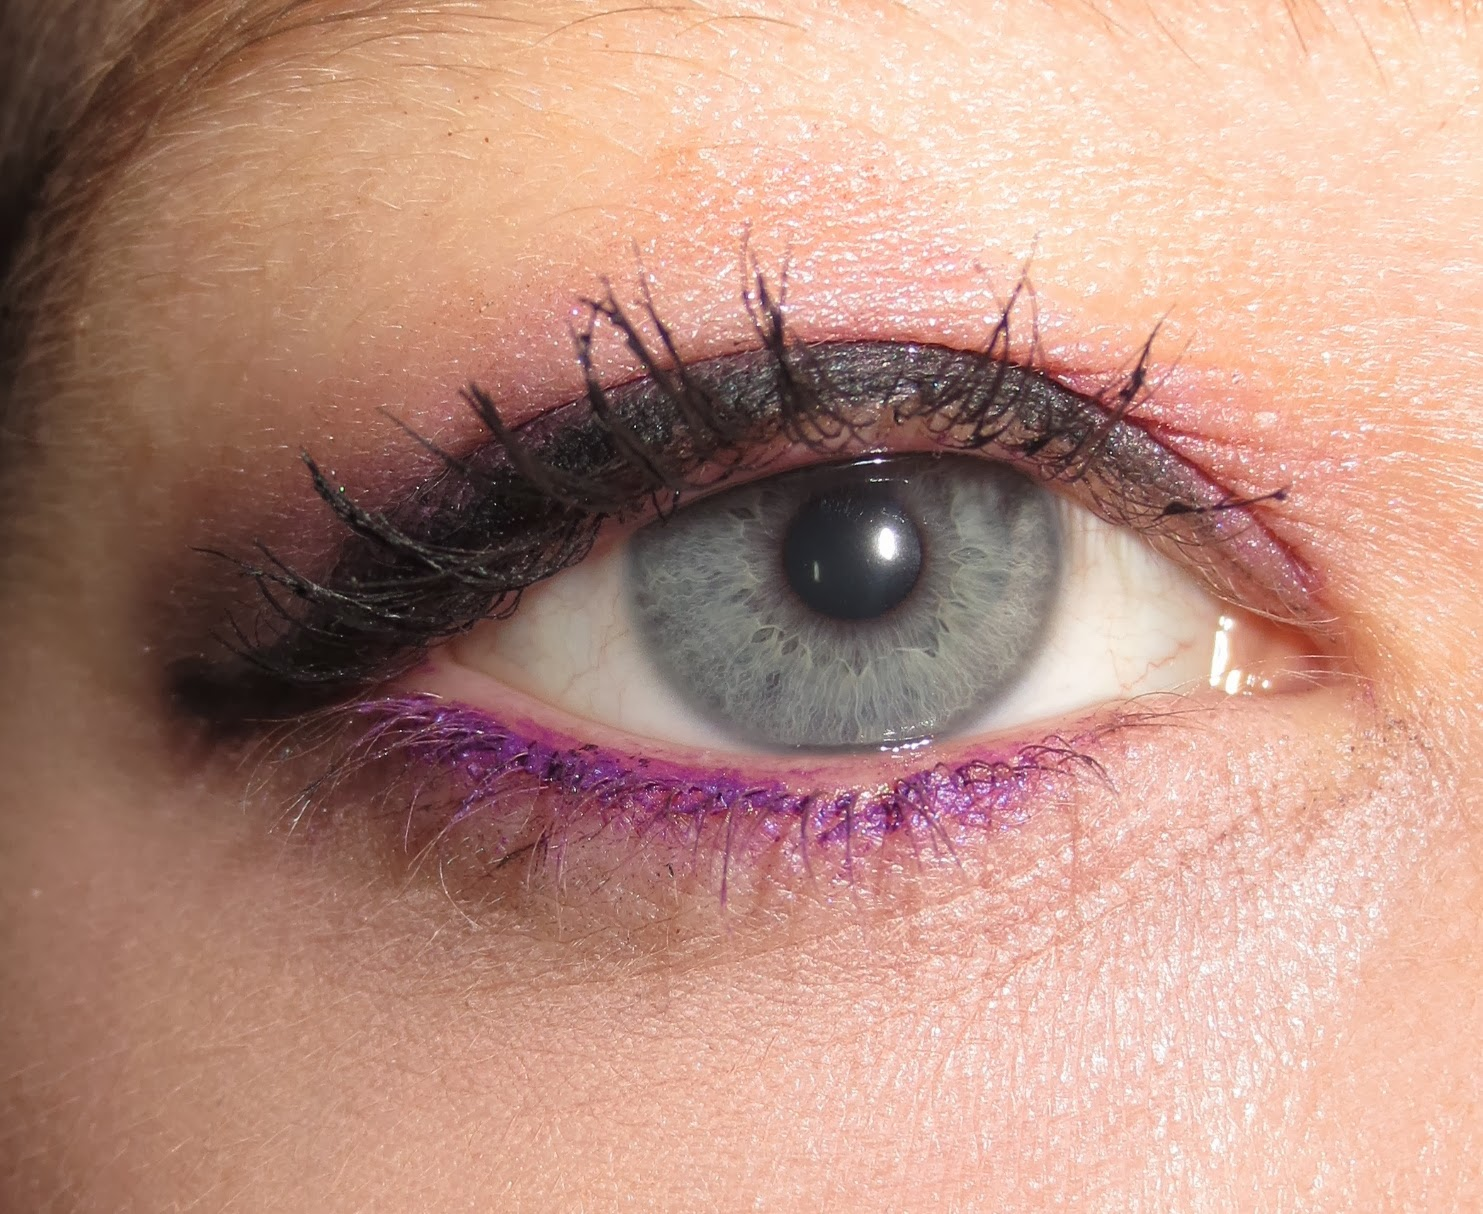 Annabelle Smoothie Eyeshadow Pencil in Grapefull on Eyes